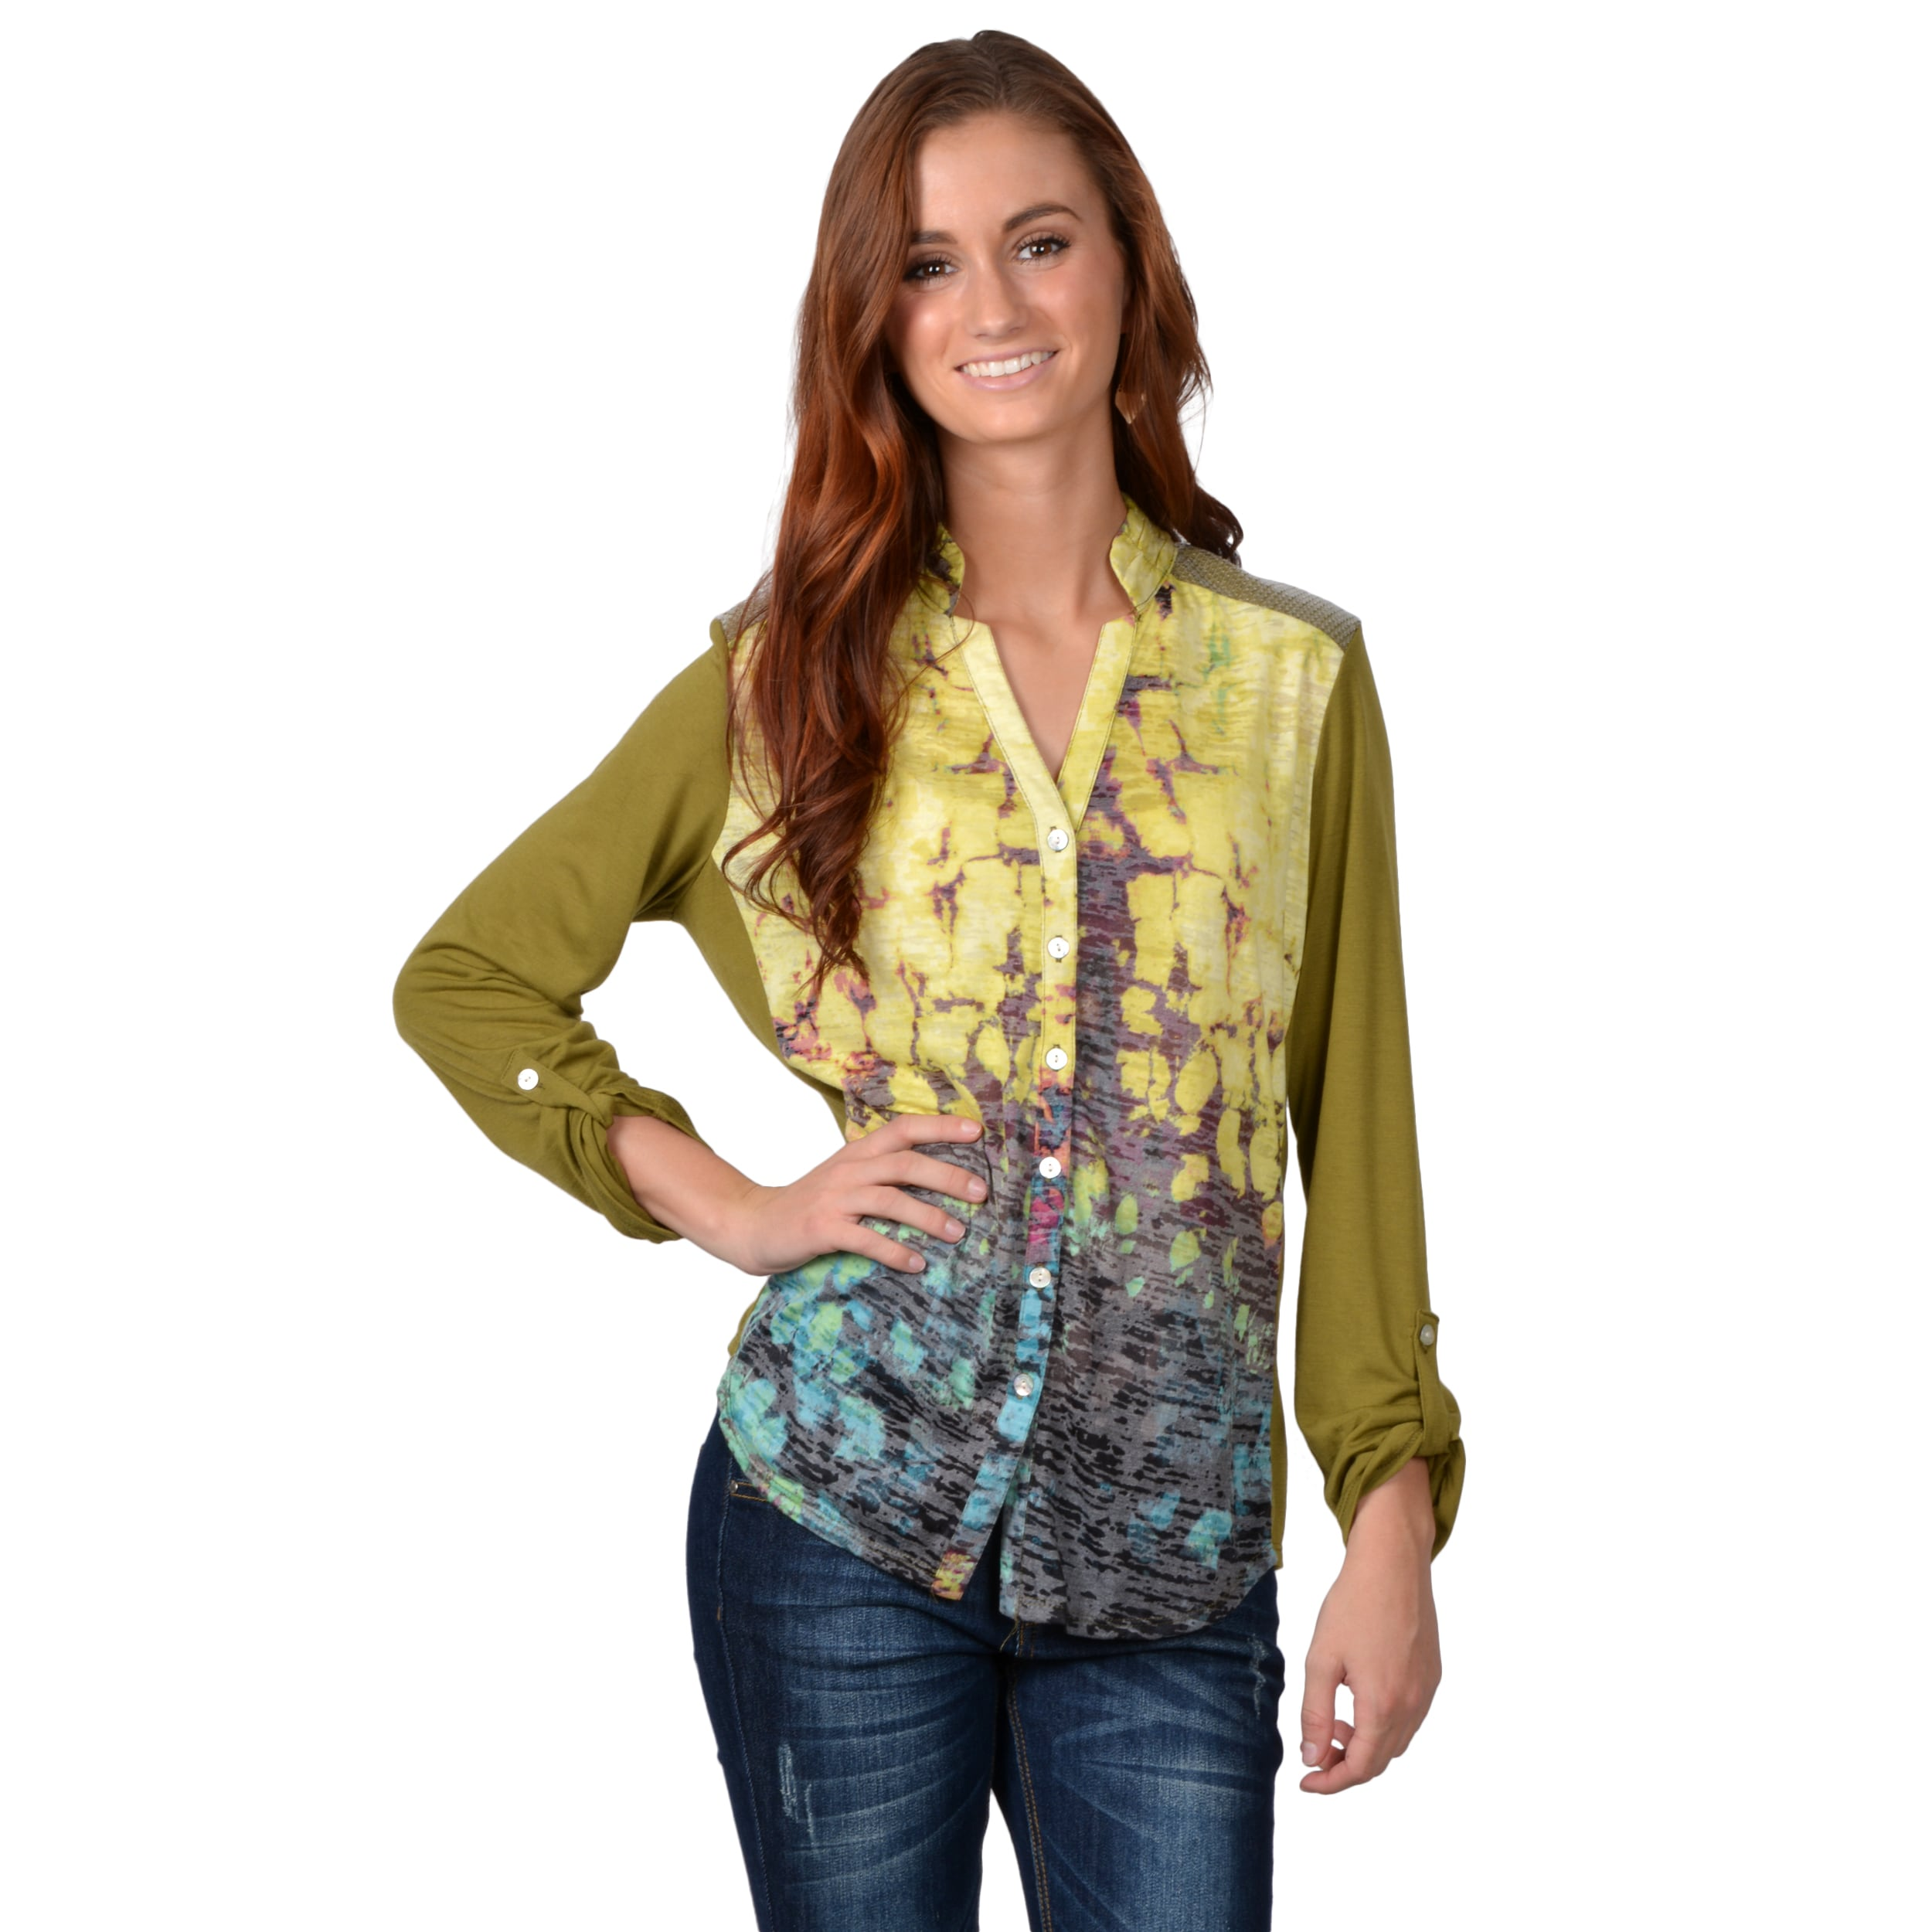 Journee Collection Women's Button-up Burnout Top